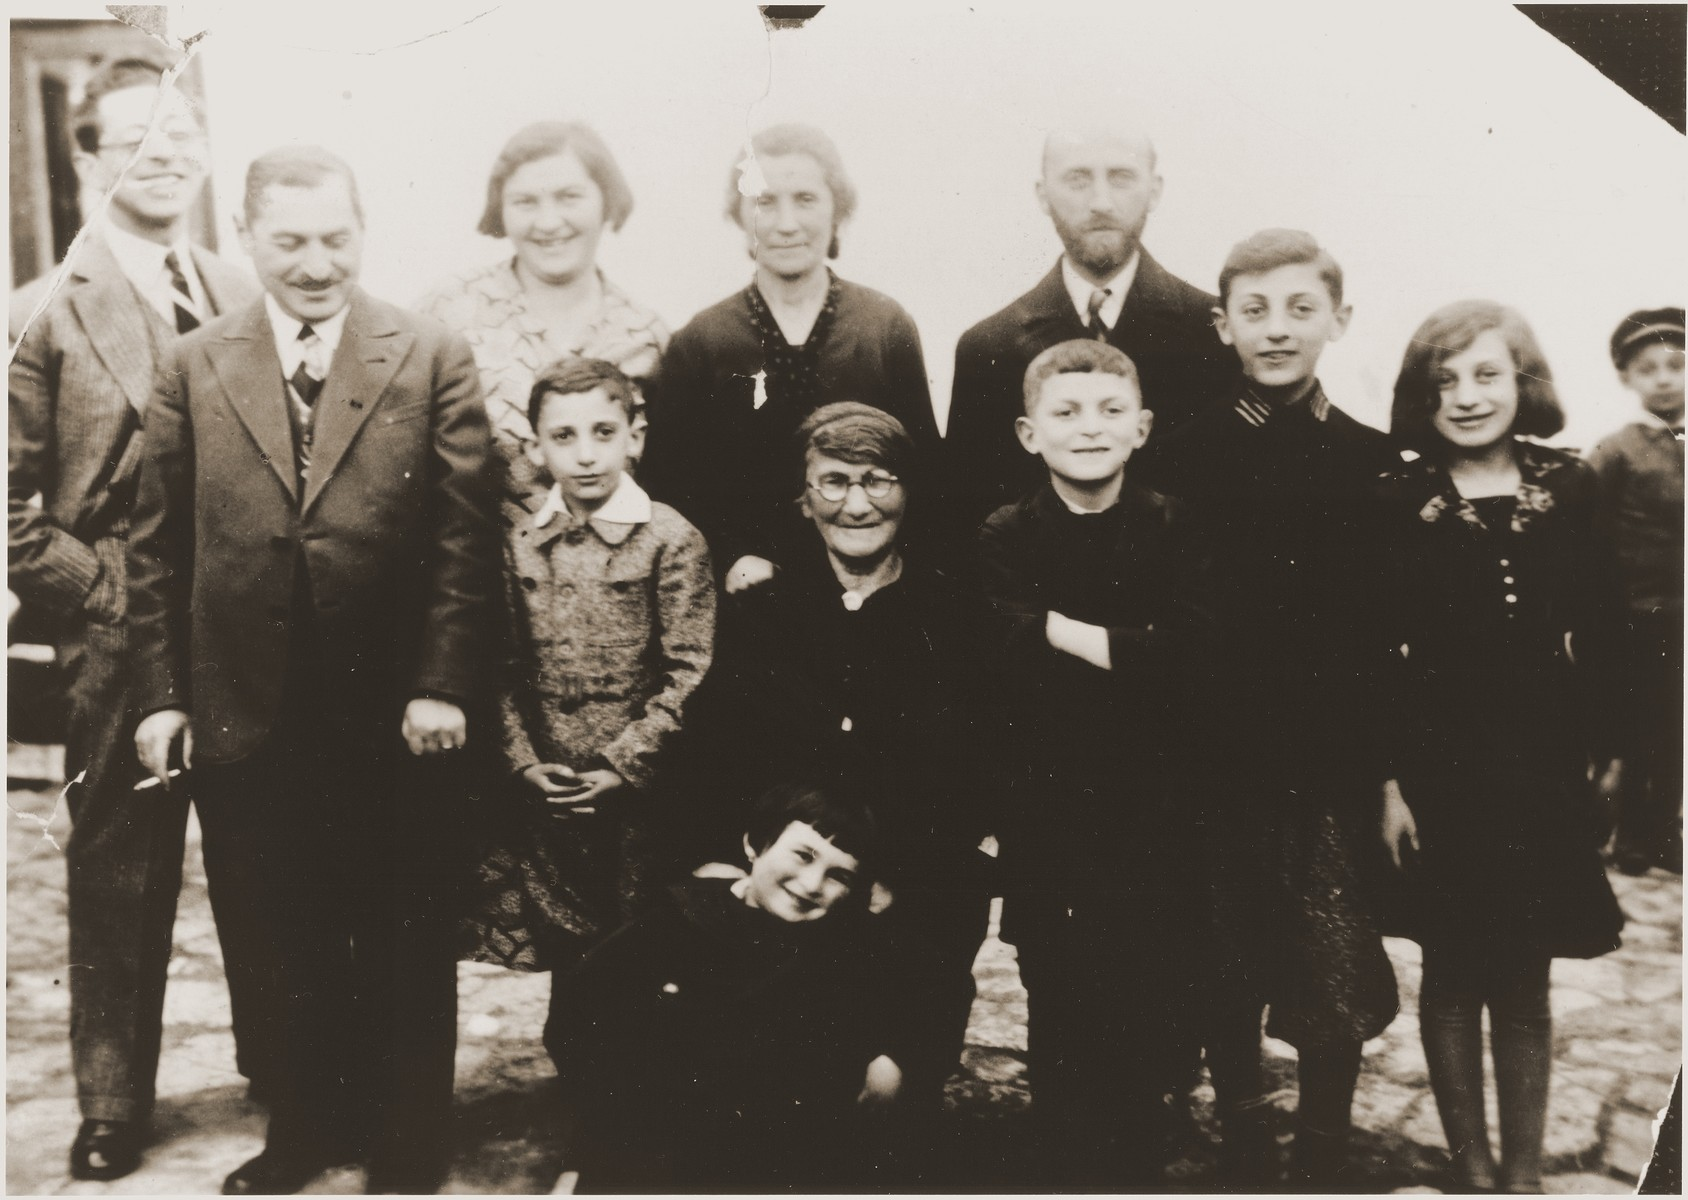 Group portrait of the extended Jewish Hochberg family in Brody, Poland.   Pictured in the back from left to right, are: Marco Chaim Lifschitz-Hochberg (the donor's uncle); Bernard Hochberg (the donor's father); Dina (Harmelin) Hochberg (the donor's mother); Malka (Hochberg) Katz (the donor's aunt); and Efraim Katz (the donor's uncle). In the middle from left to right, are: Abraham Katz (the donor's cousin); Batja (Lifschitz) Hochberg (the donor's grandmother); Sigmund Hochberg (the donor's brother); Itamar and Rachel Katz. In front is the donor, Eugenia Hochberg.